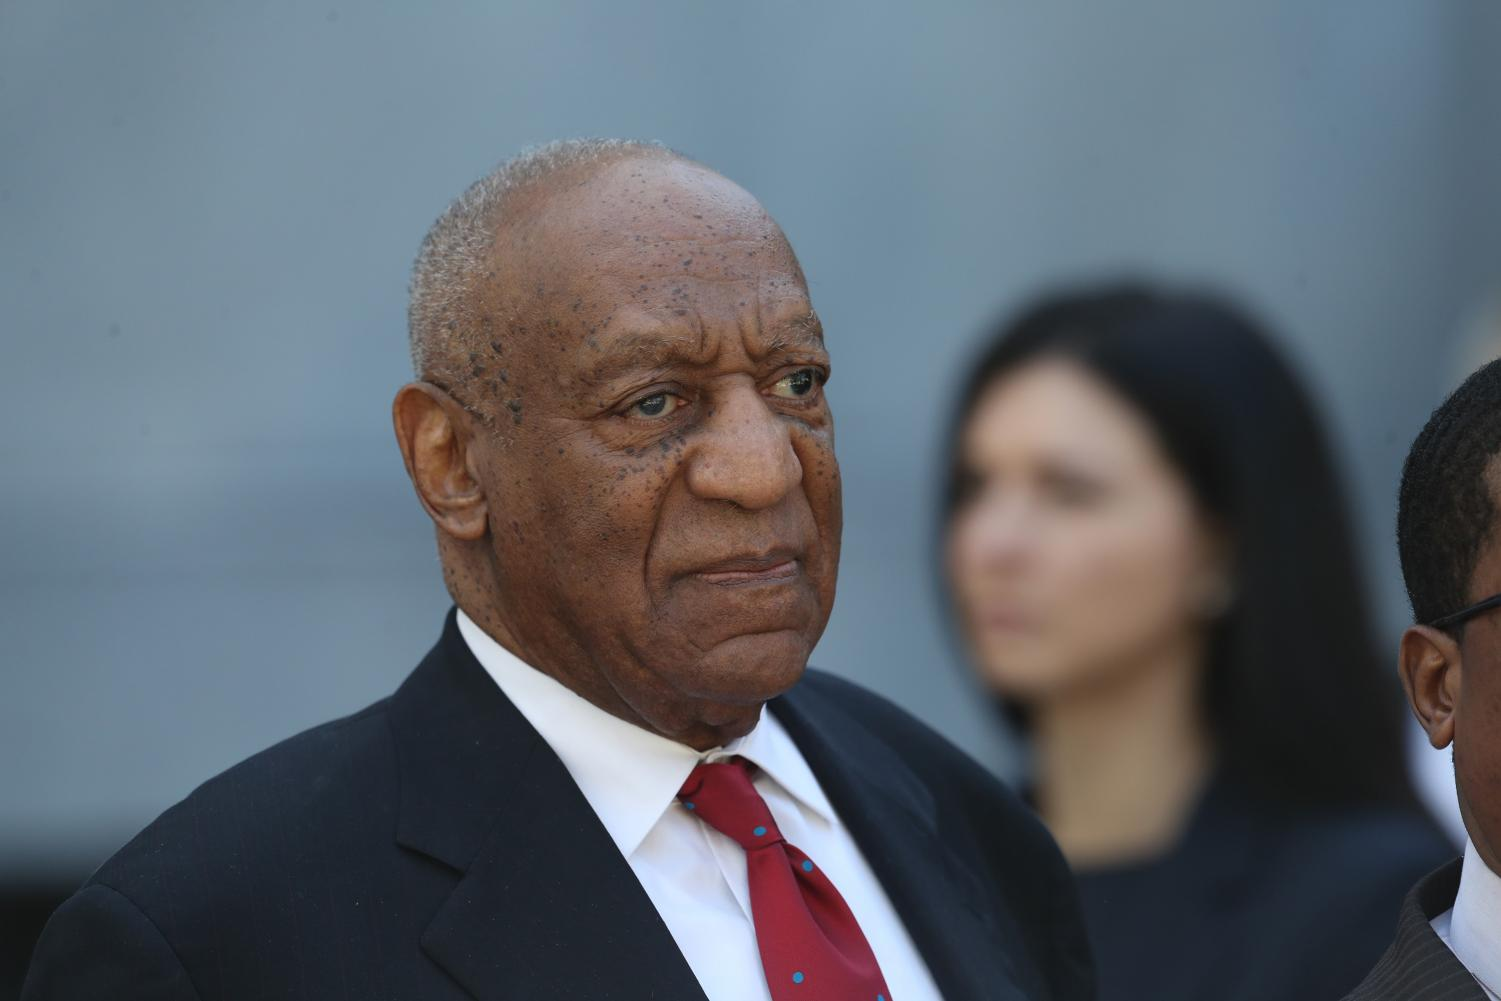 Bill Cosby walks out of the Montgomery County Courthouse on Thursday, April 26, 2018 in Norristown, Pa. after learning a jury found him guilty of sexual assault. Northwestern's Board of Trustees will discuss the status of Cosby's honorary degree before commencement in June.